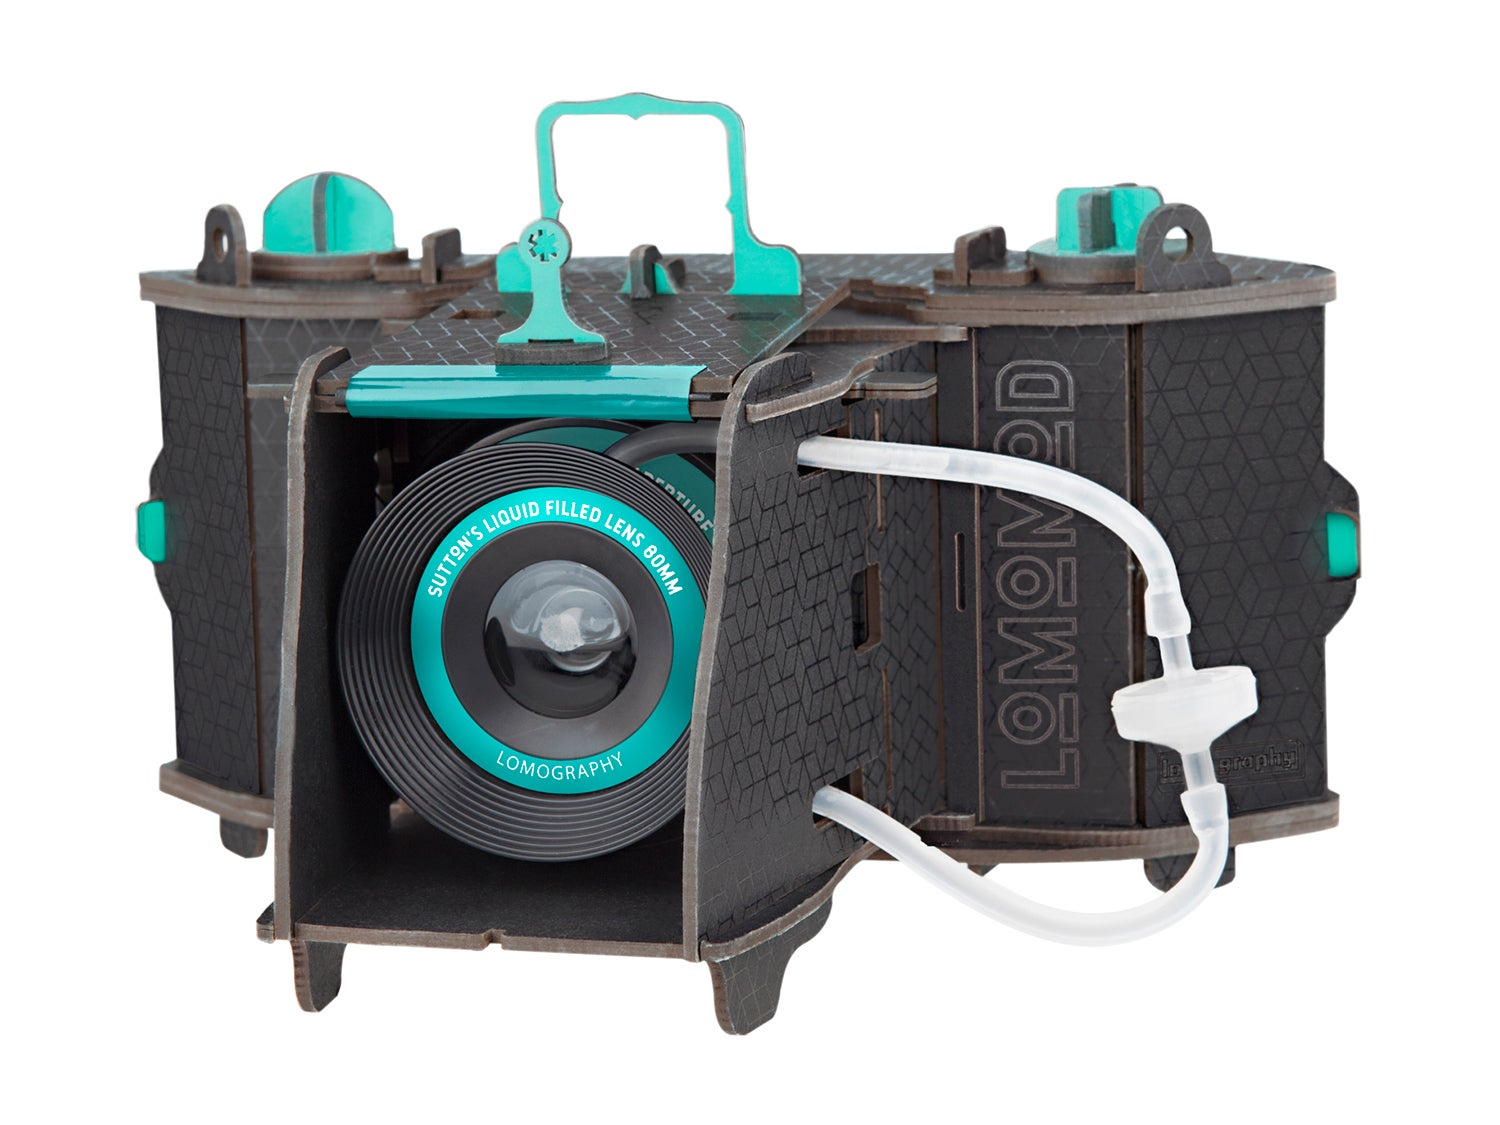 Lomography's build-it-yourself camera in a box has a crazy liquid filled lens